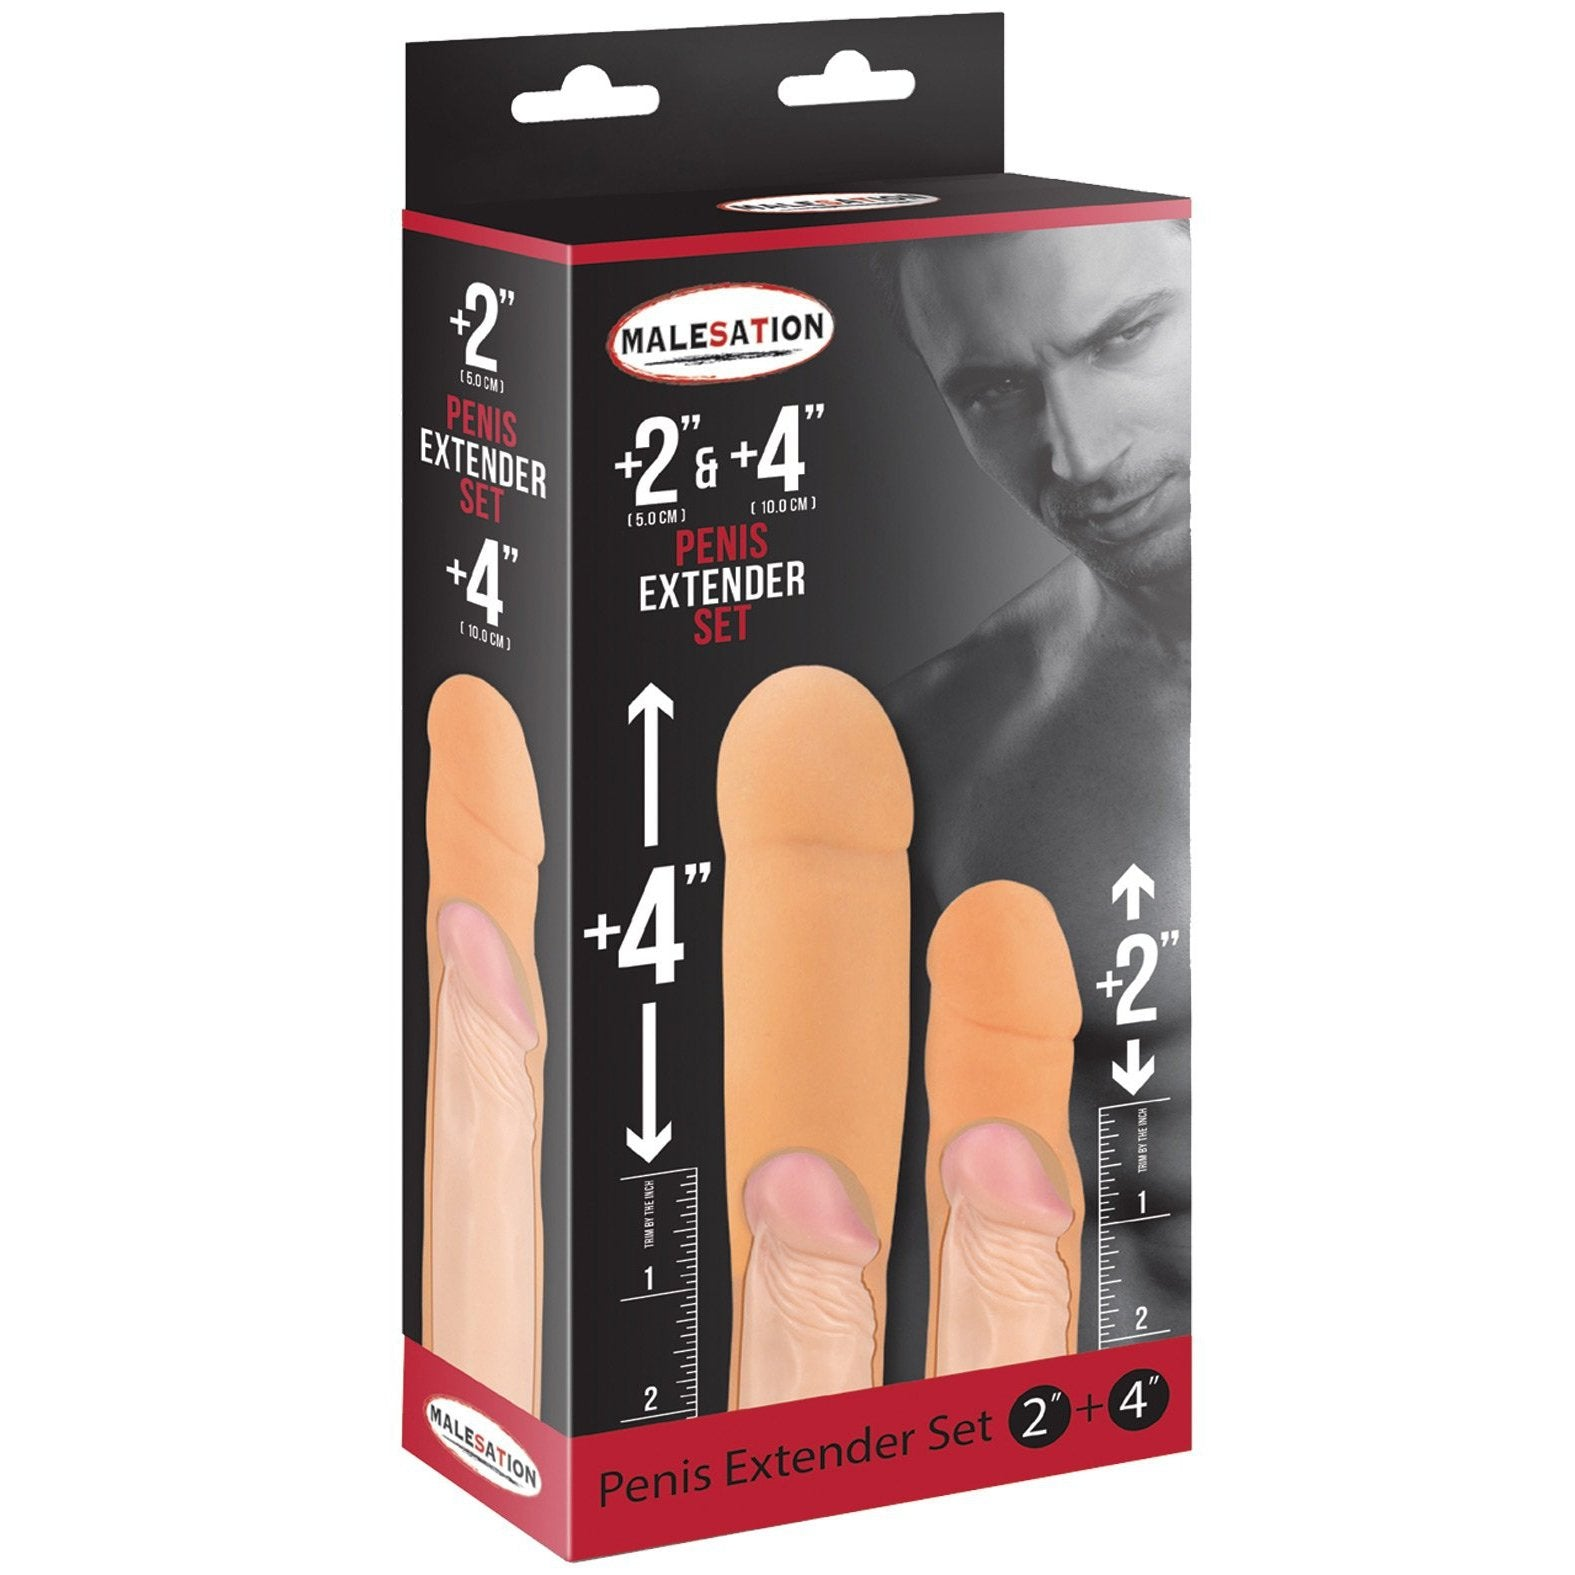 "Malesation 2"" & 4"" Penis Extenders - Gay Men's Sex Toys - Adam's Toy Box"